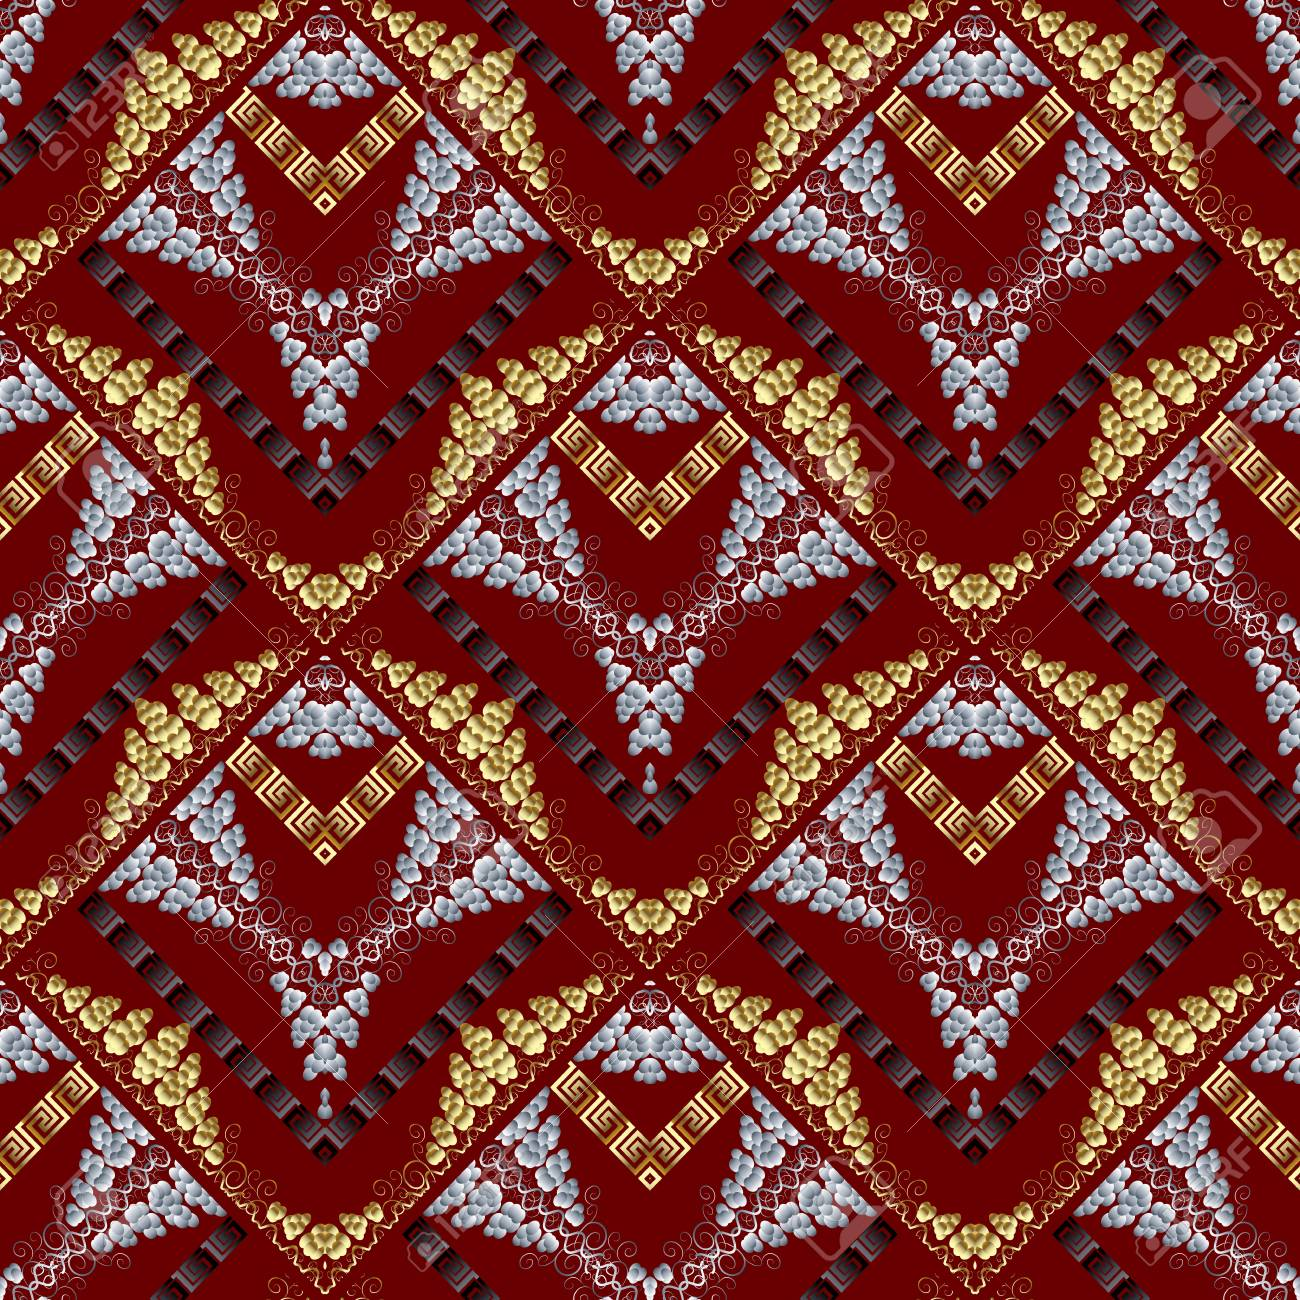 Modern Abstract Meanders Seamless Pattern Red Vector Background